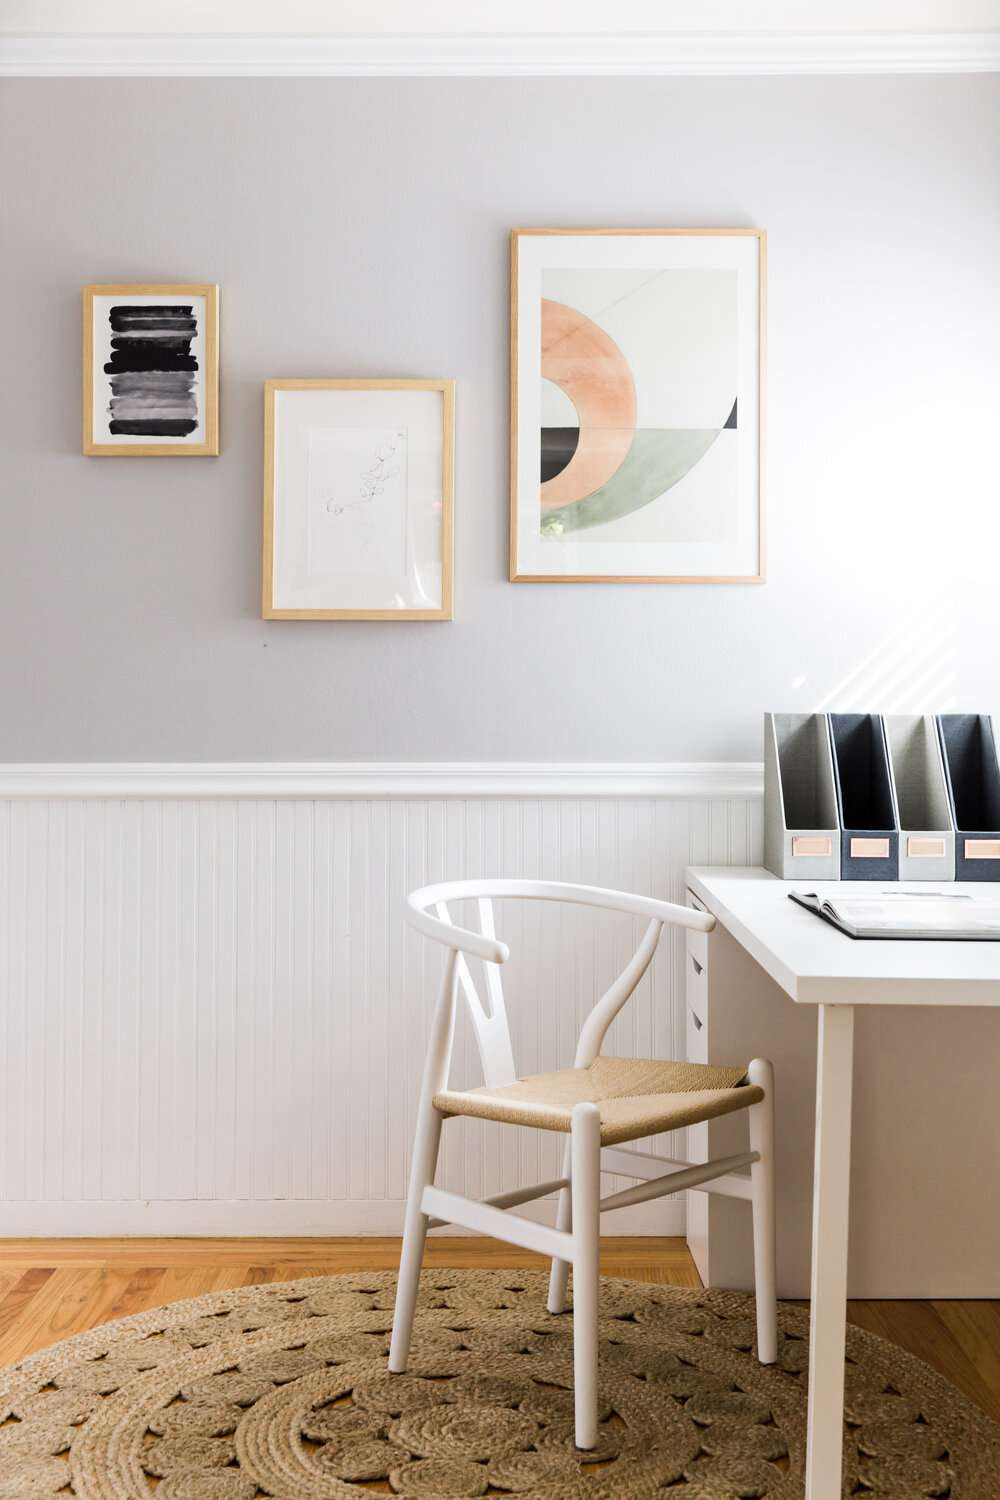 history of wishbone chair - white chair with tan seat in front of desk